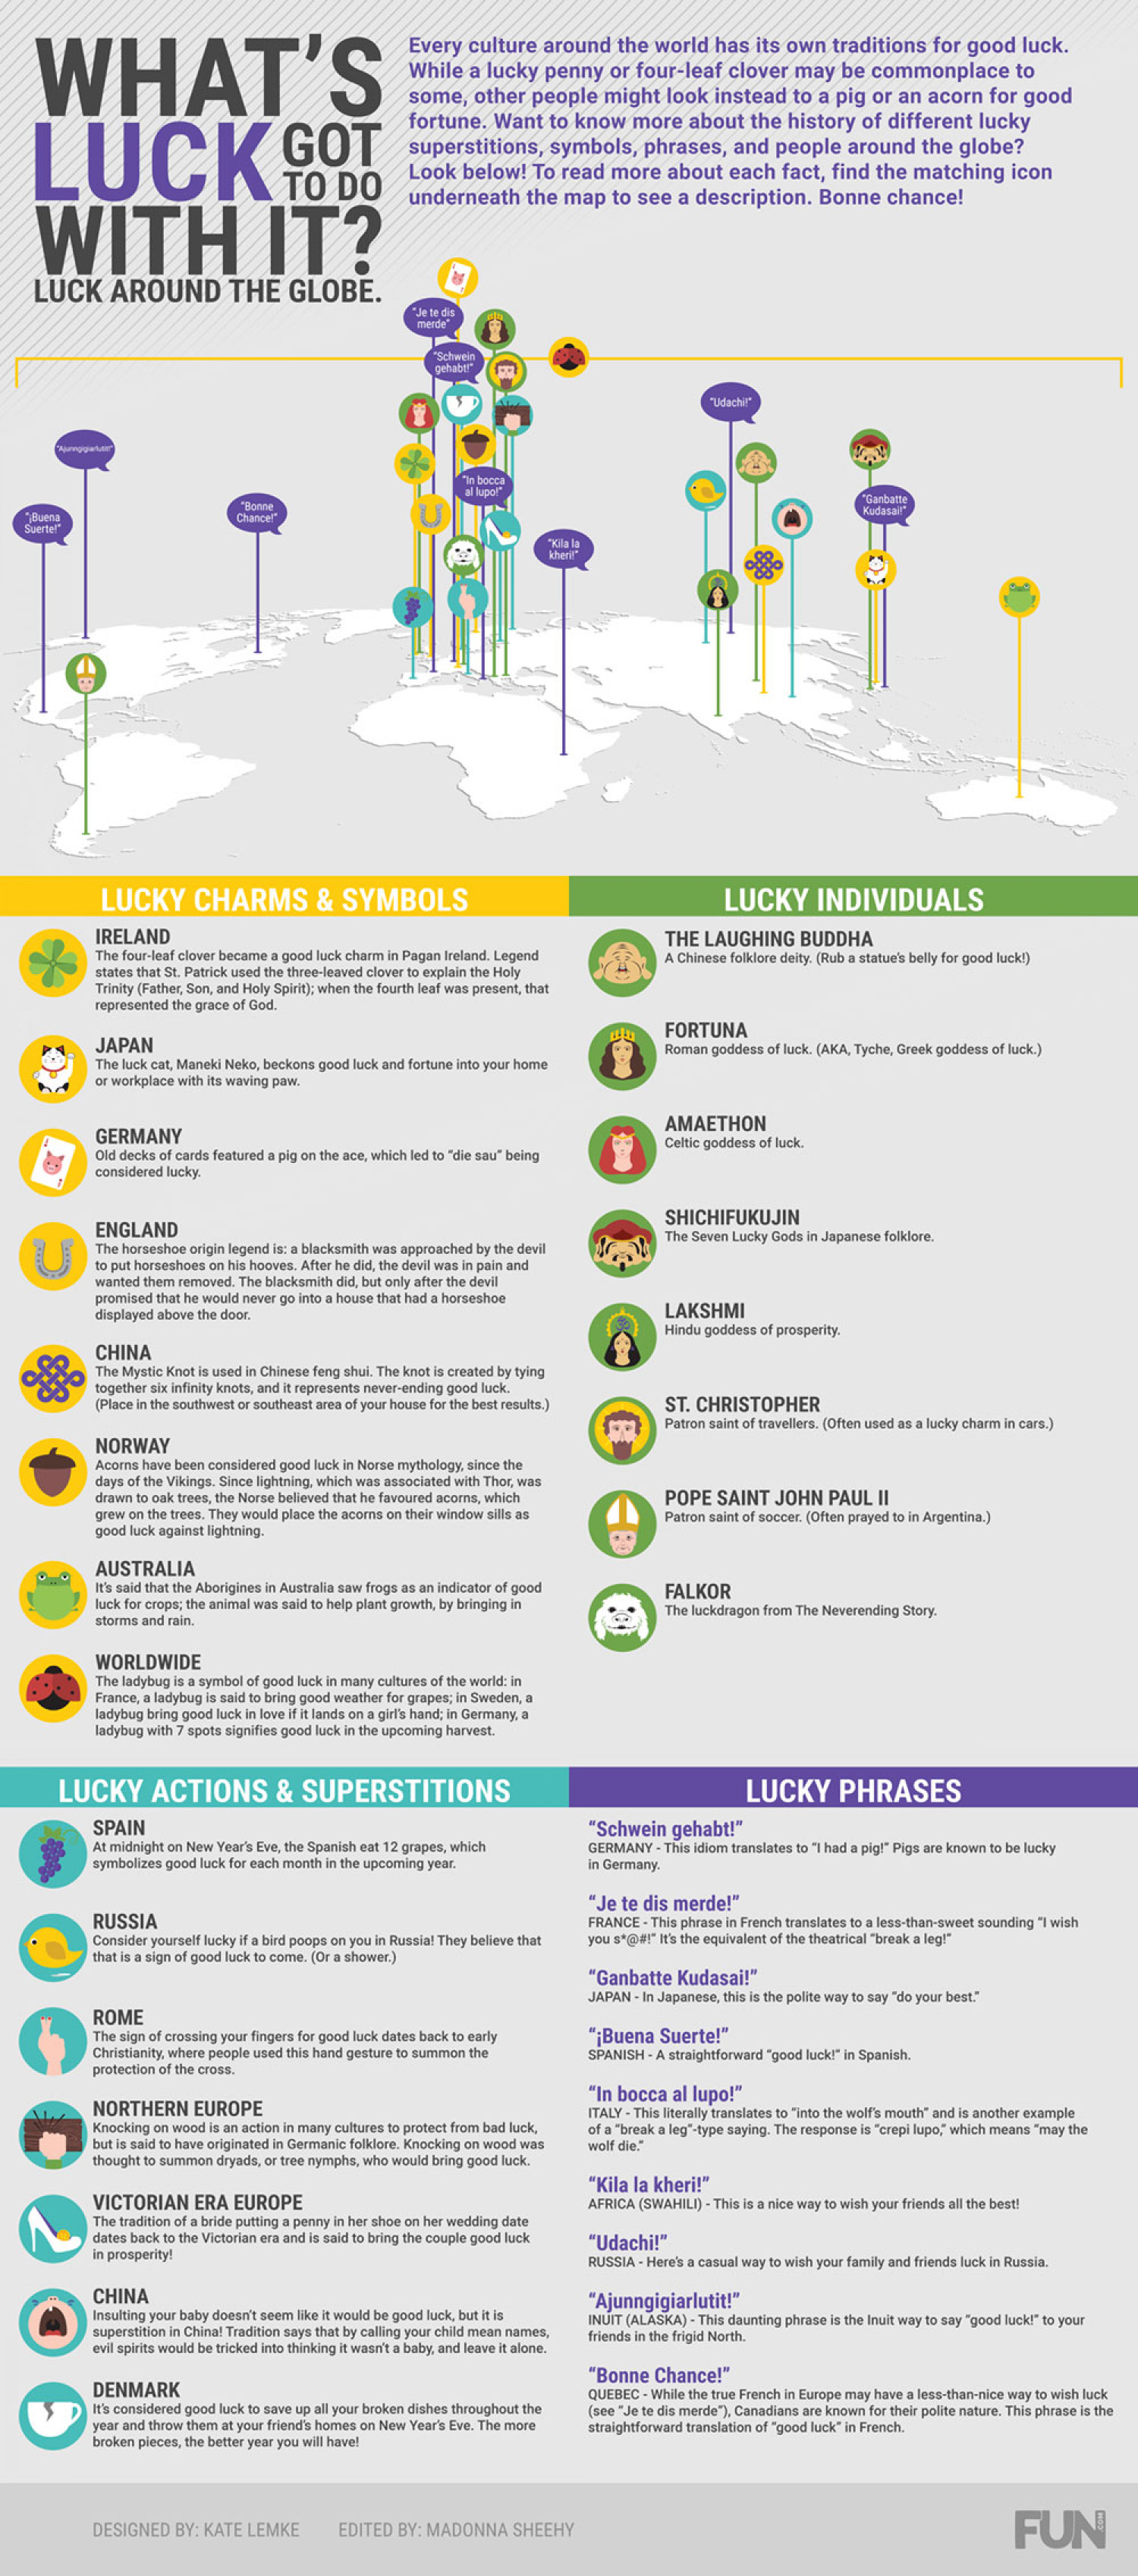 What's Luck Got To Do With It? Luck Around the Globe Infographic